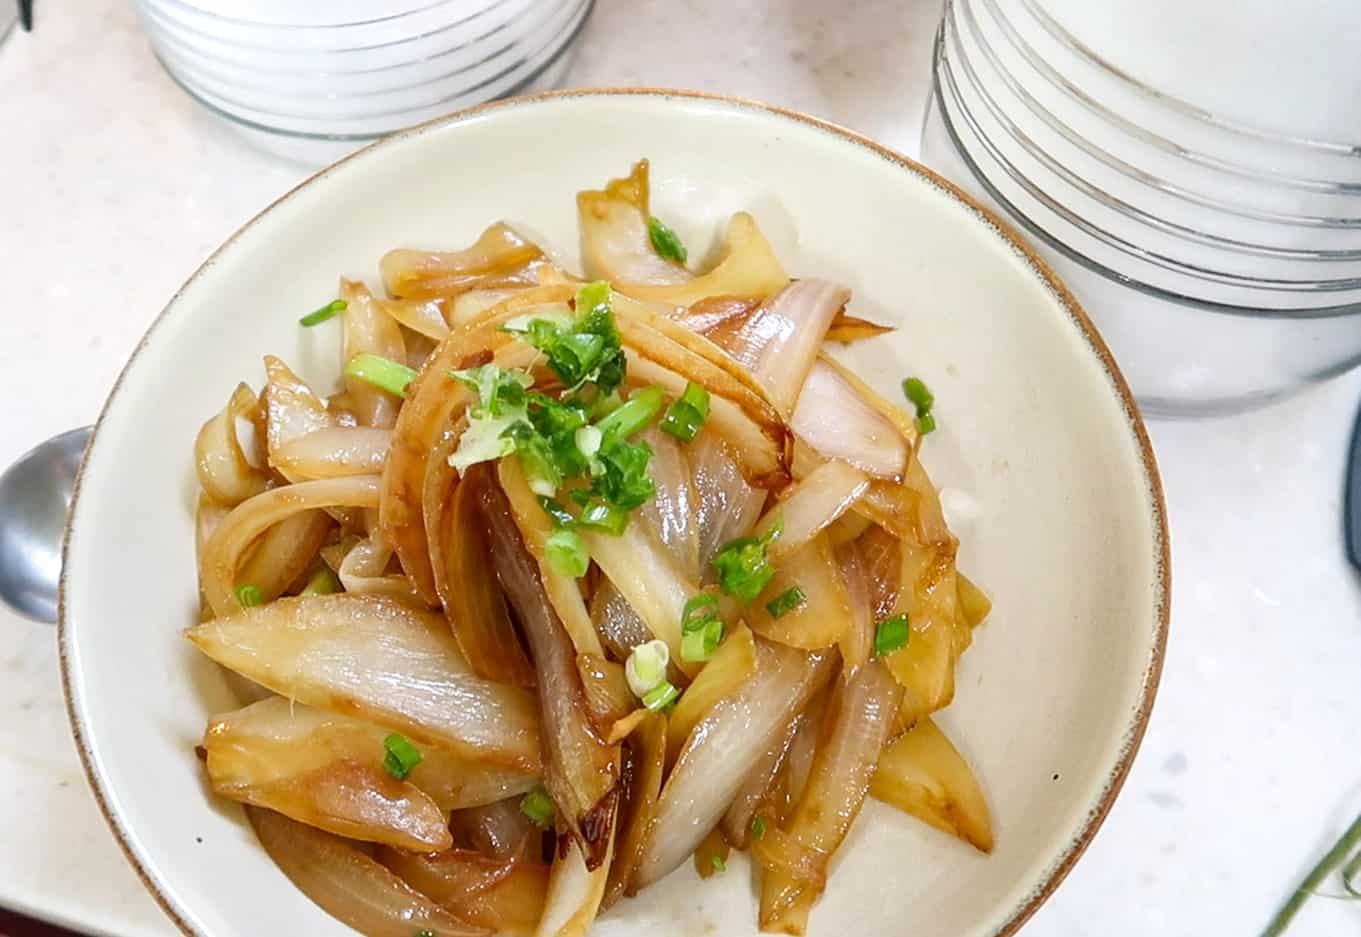 Korean Hansik Meal - Stir-fried Onions